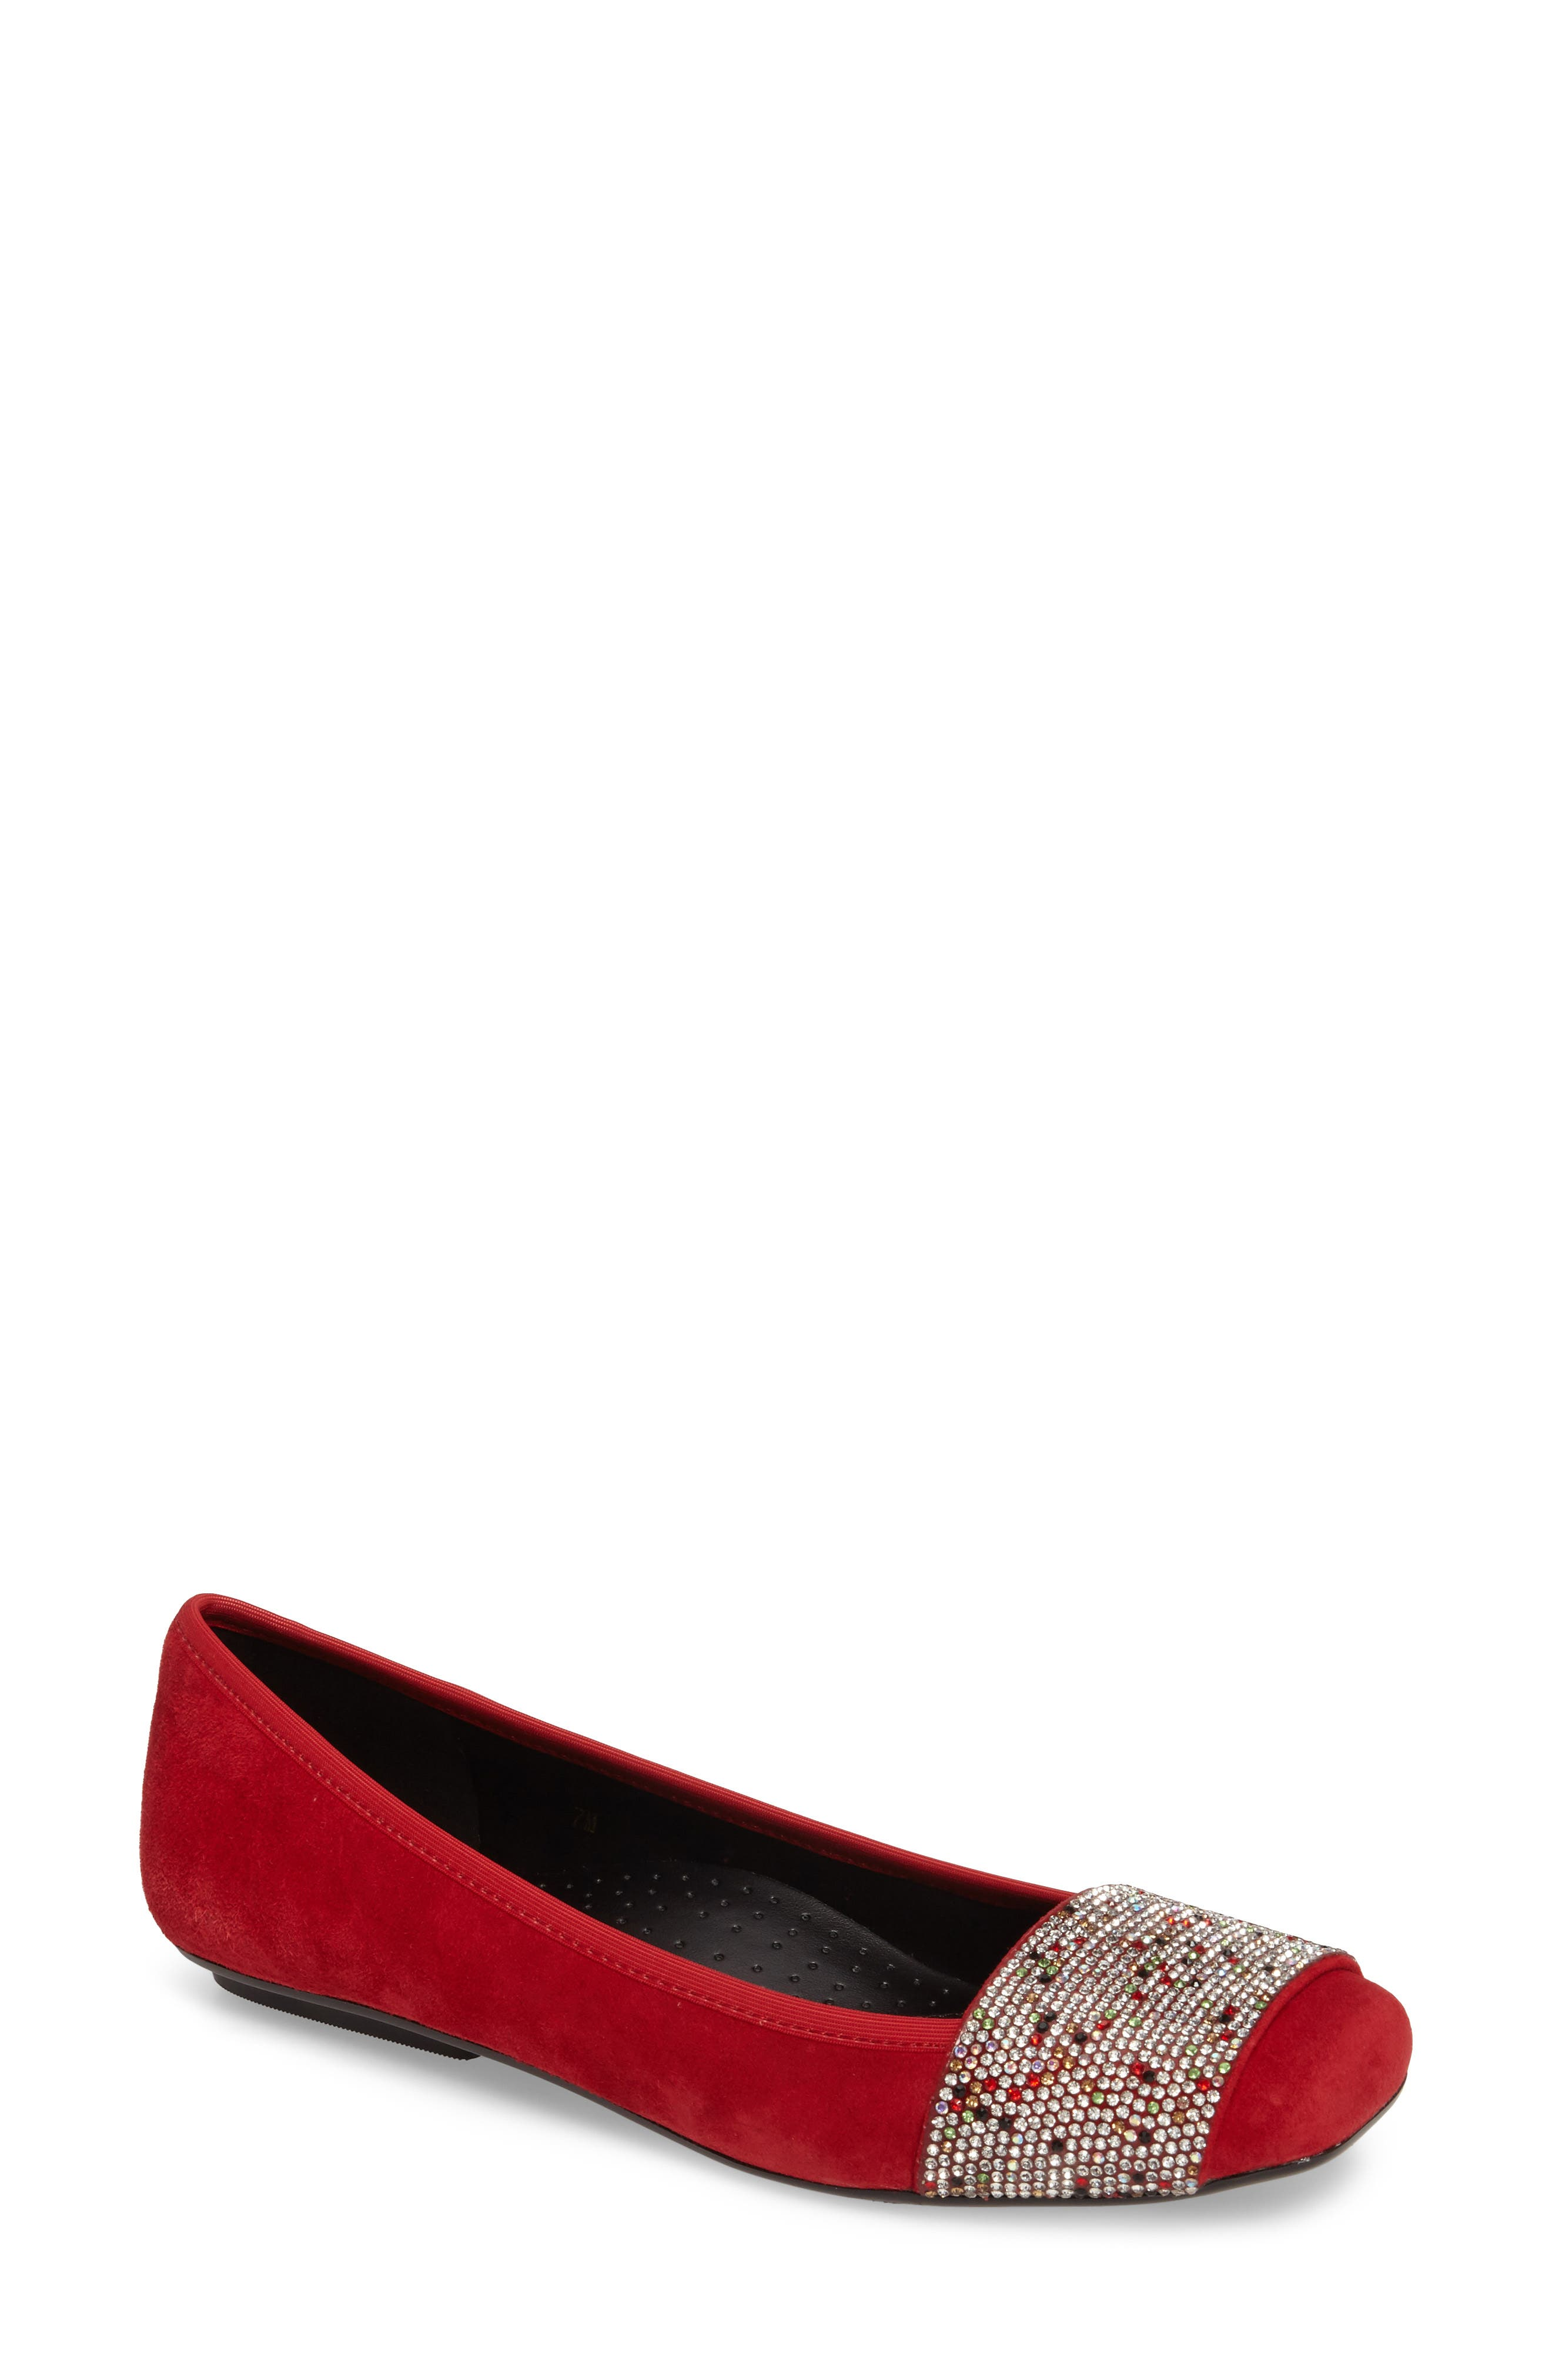 Nabila Embellished Ballet Flat,                             Main thumbnail 1, color,                             Red Suede